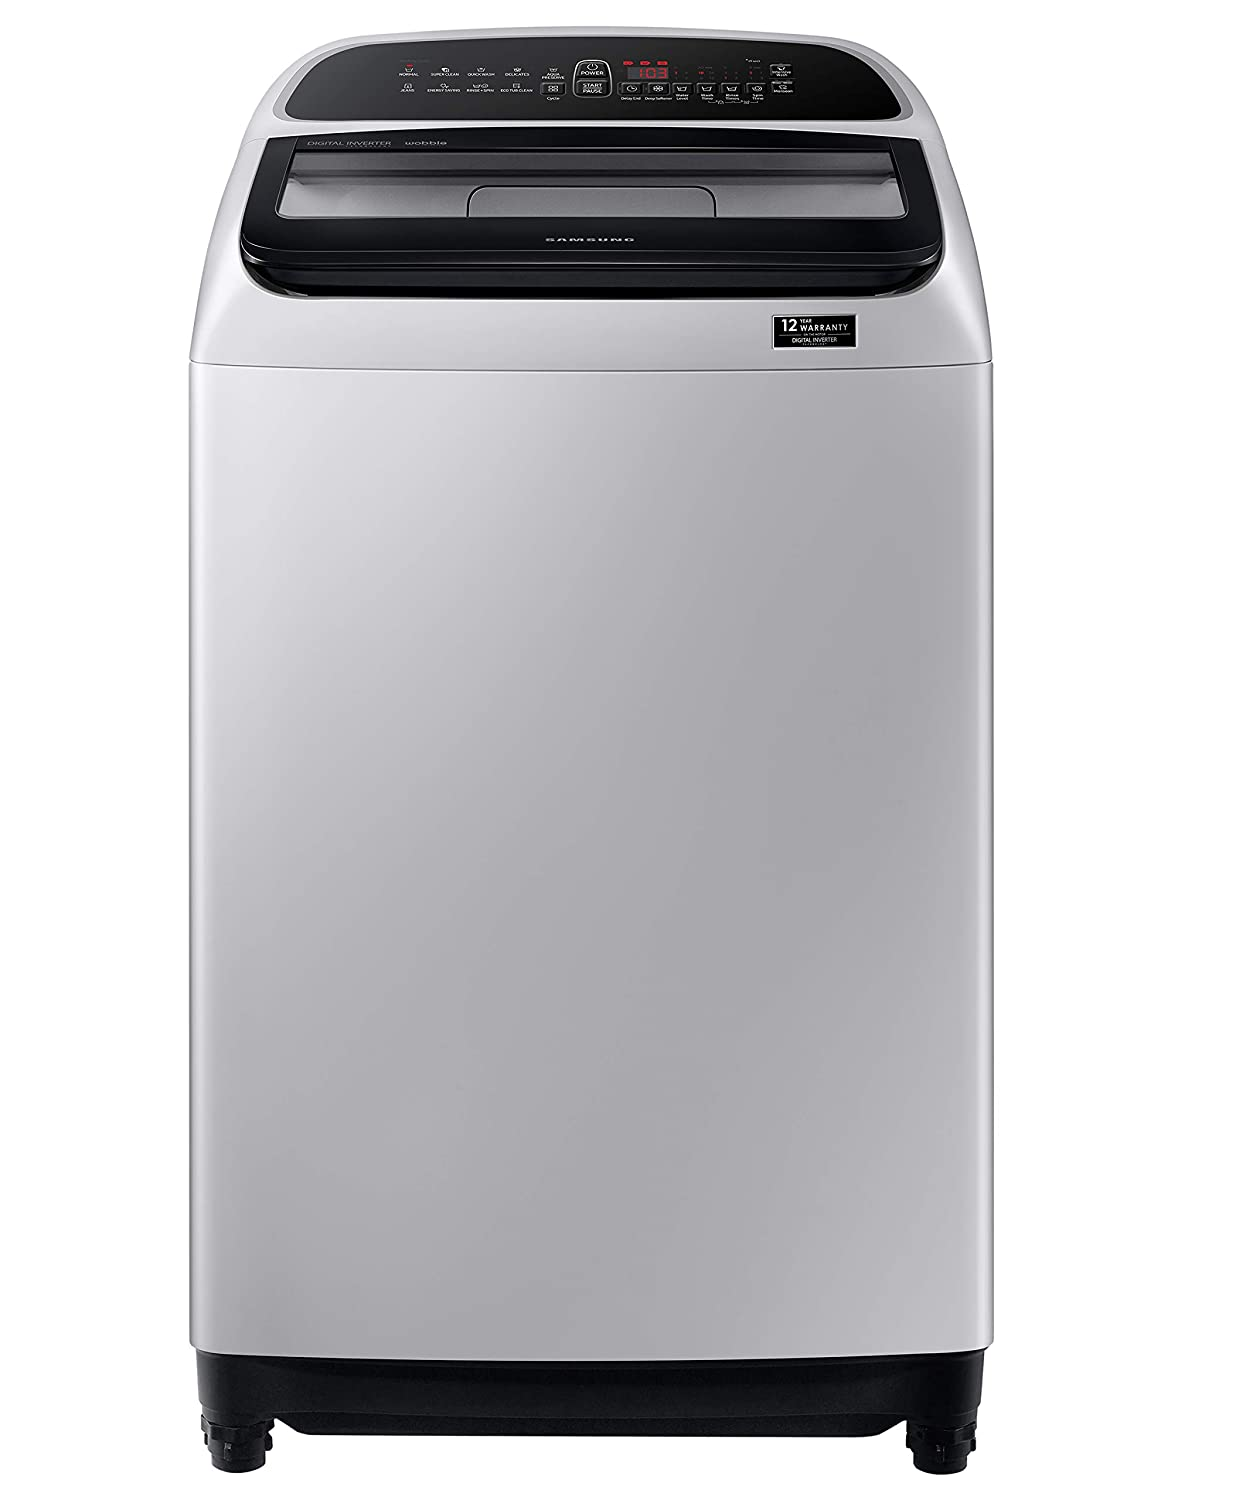 Samsung 9 Kg Inverter 5 Star Fully Automatic Top-Loading Washing Machine – WA90T5260BY/TL